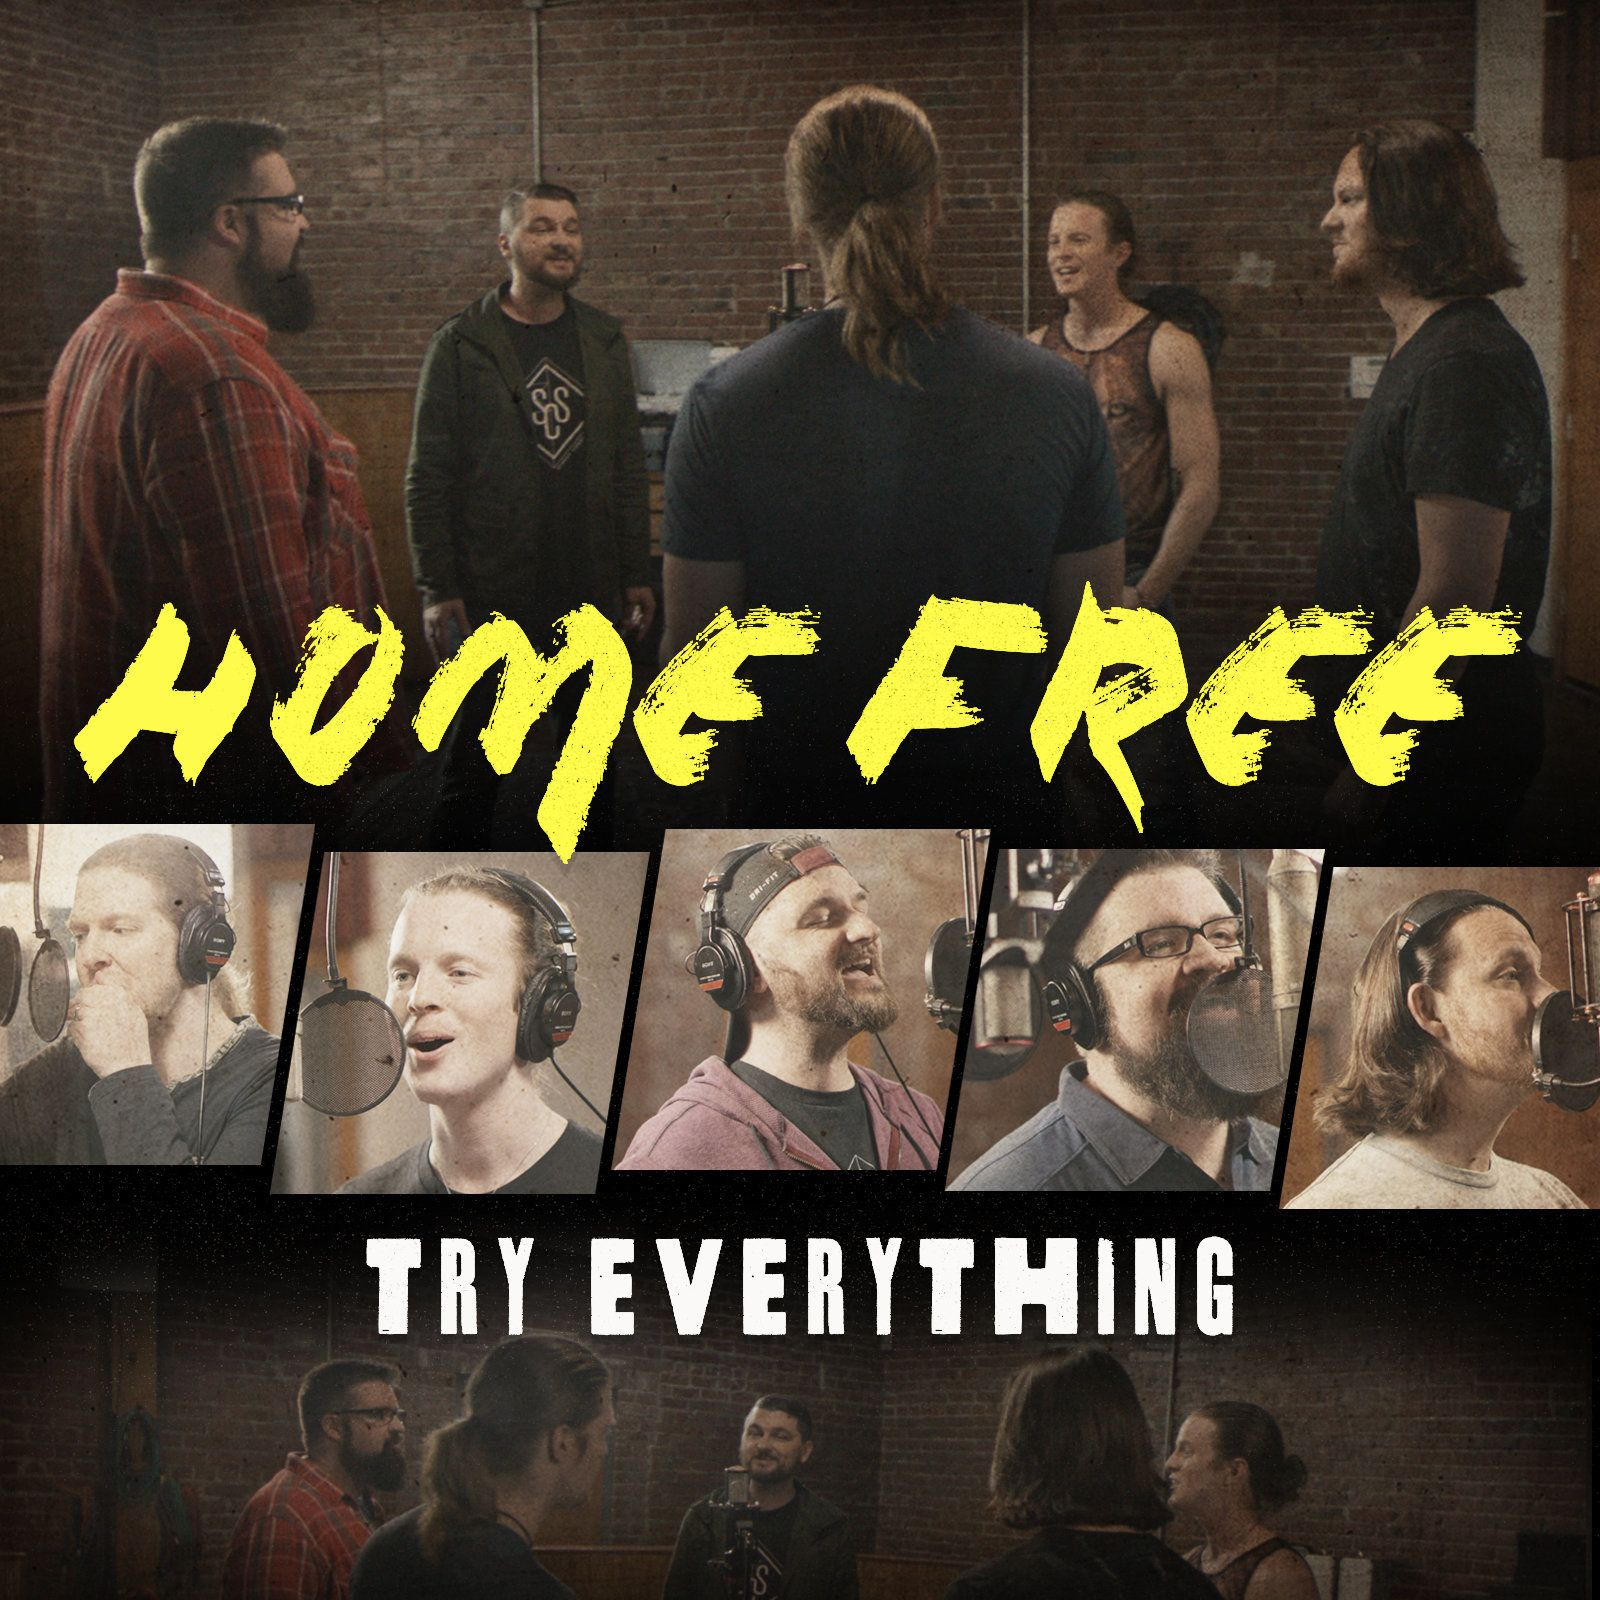 vocal group home free covers  u0026 39 try everything u0026 39  from